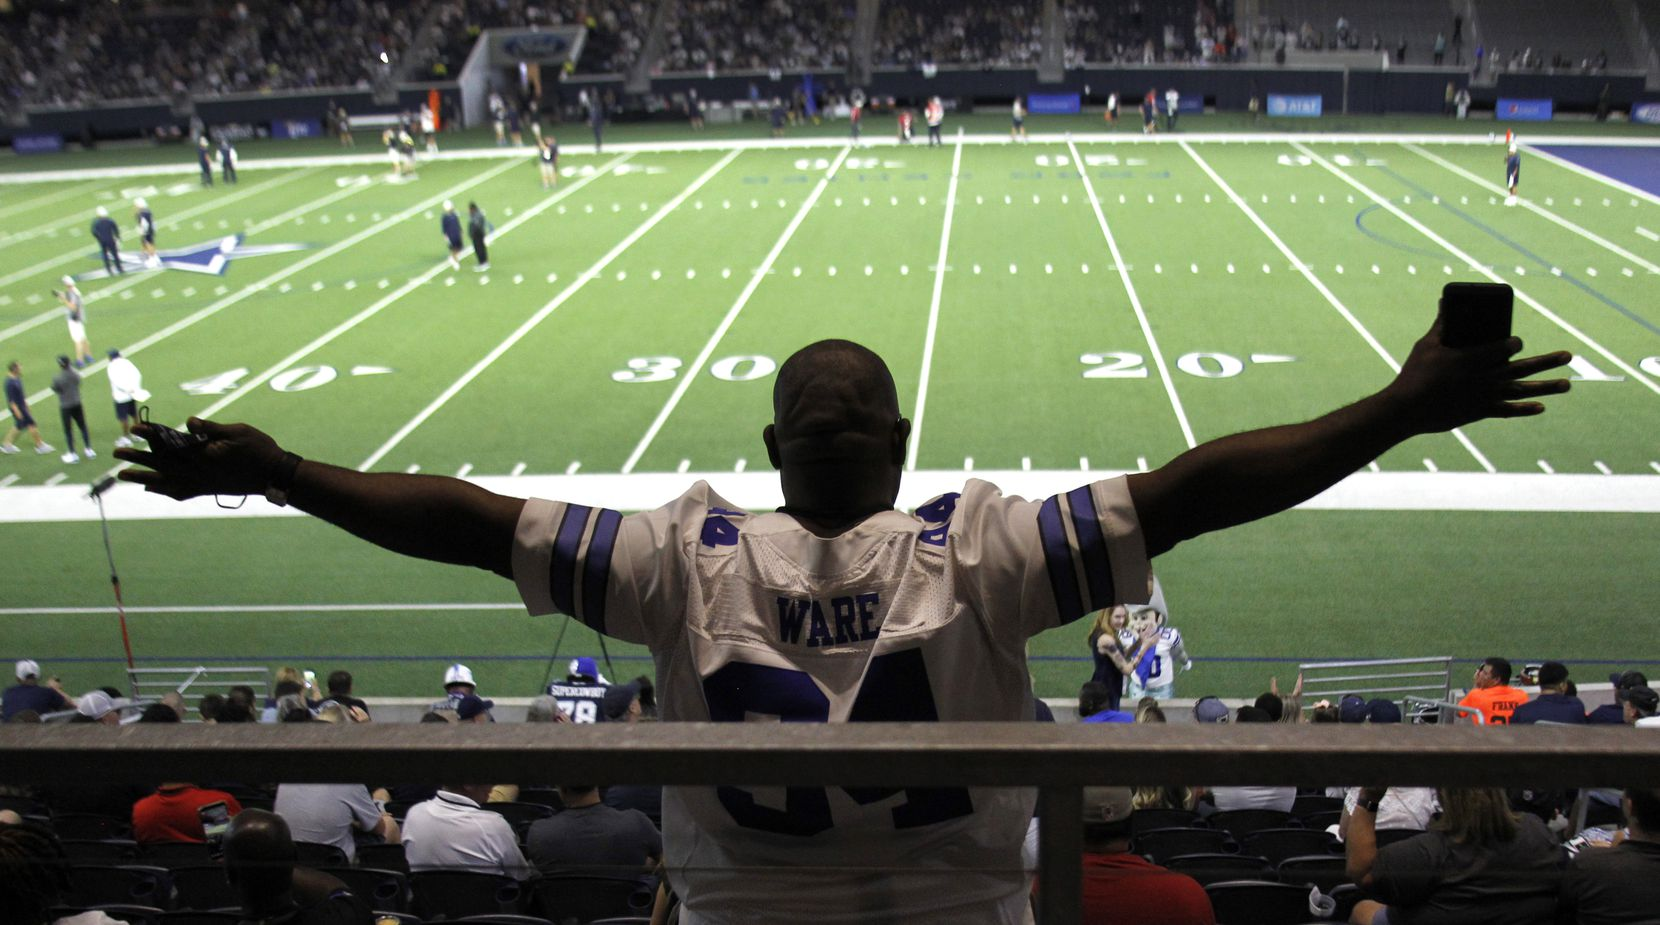 Dallas Cowboys fan Darrell Glenn takes in the team's final public practice of training camp. The Cowboys conducted the football practice session inside The Star at the Ford Center in Frisco on August 28, 2021. (Steve Hamm/ Special Contributor)